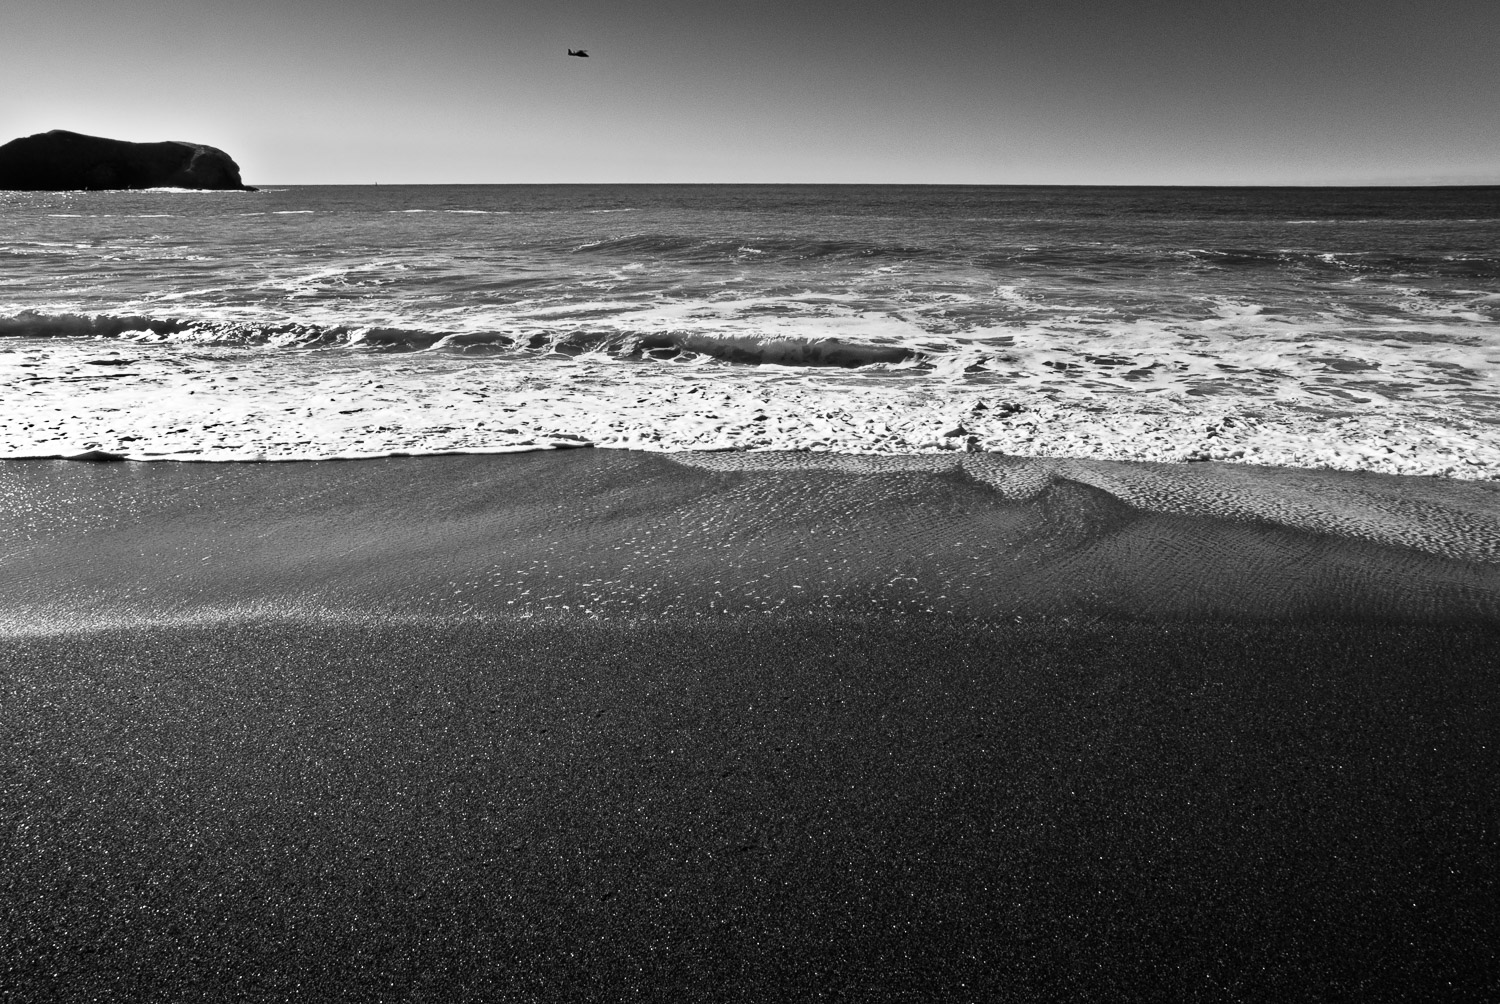 Beach, Rock, and Helicopter | Mark Lindsay